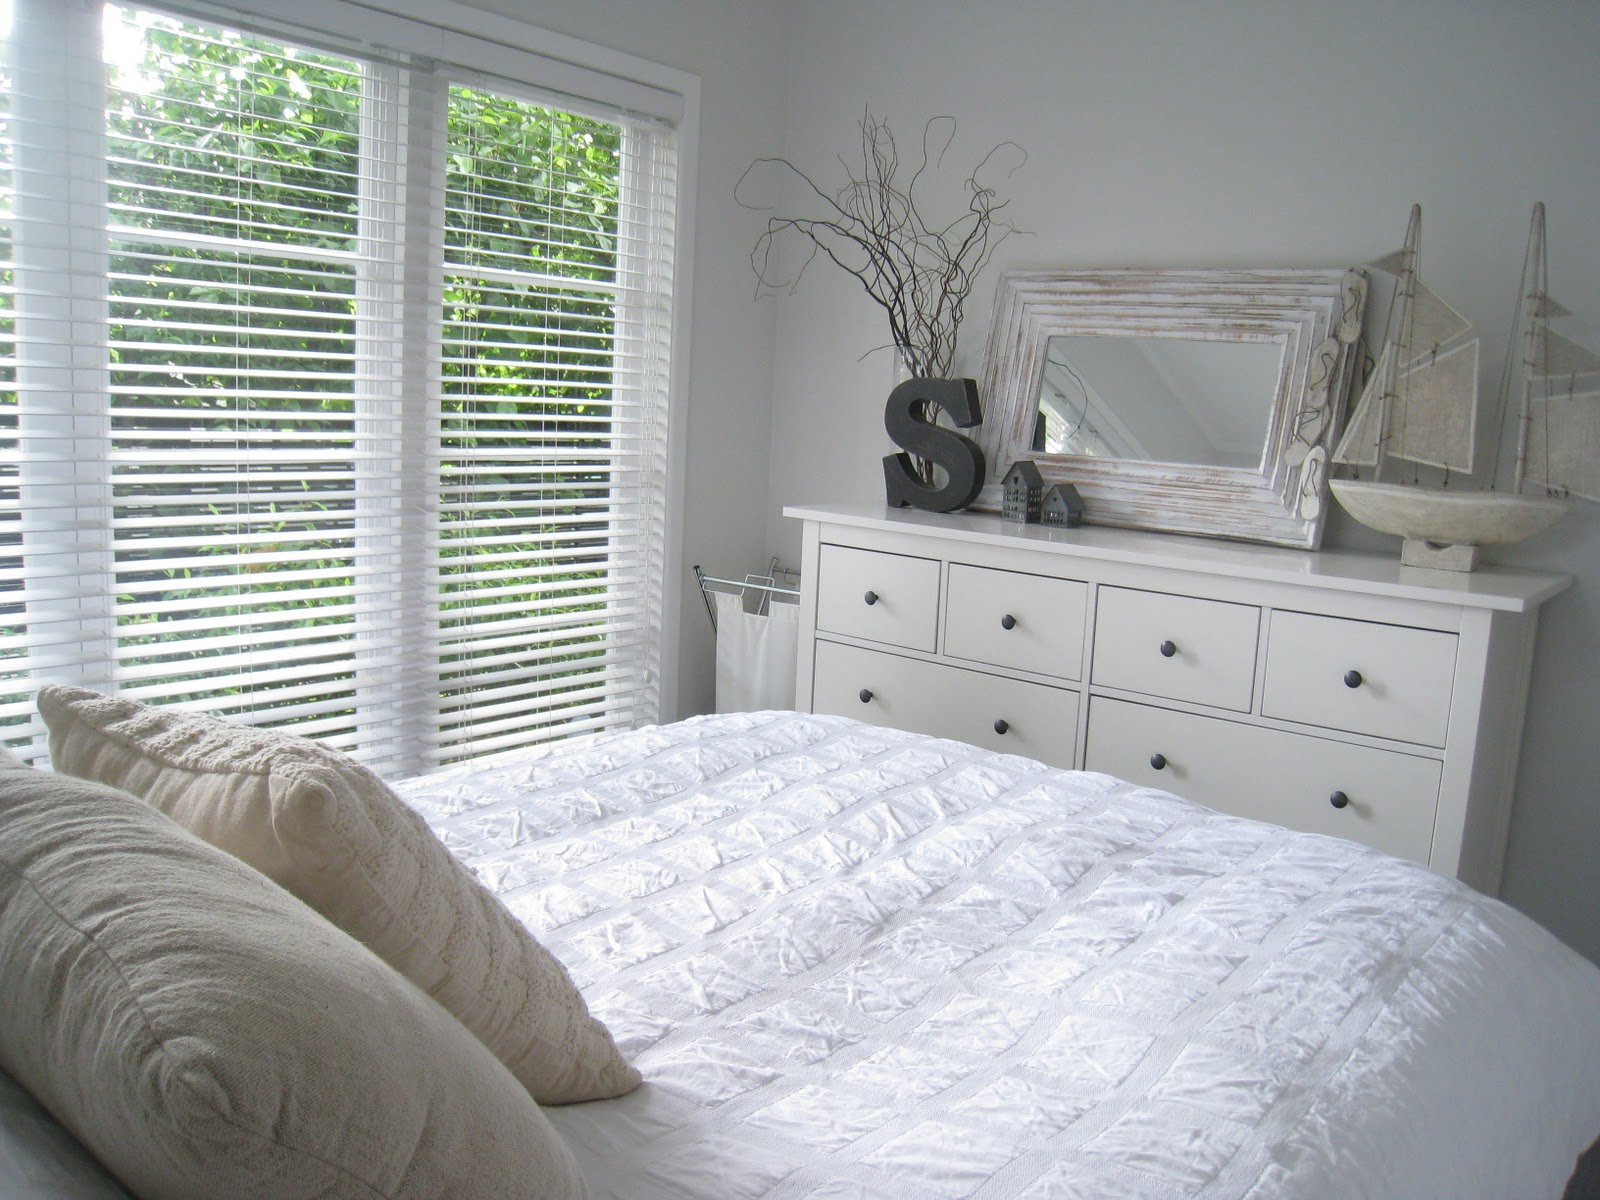 SOMMERWHITE: OUR MASTER BEDROOM